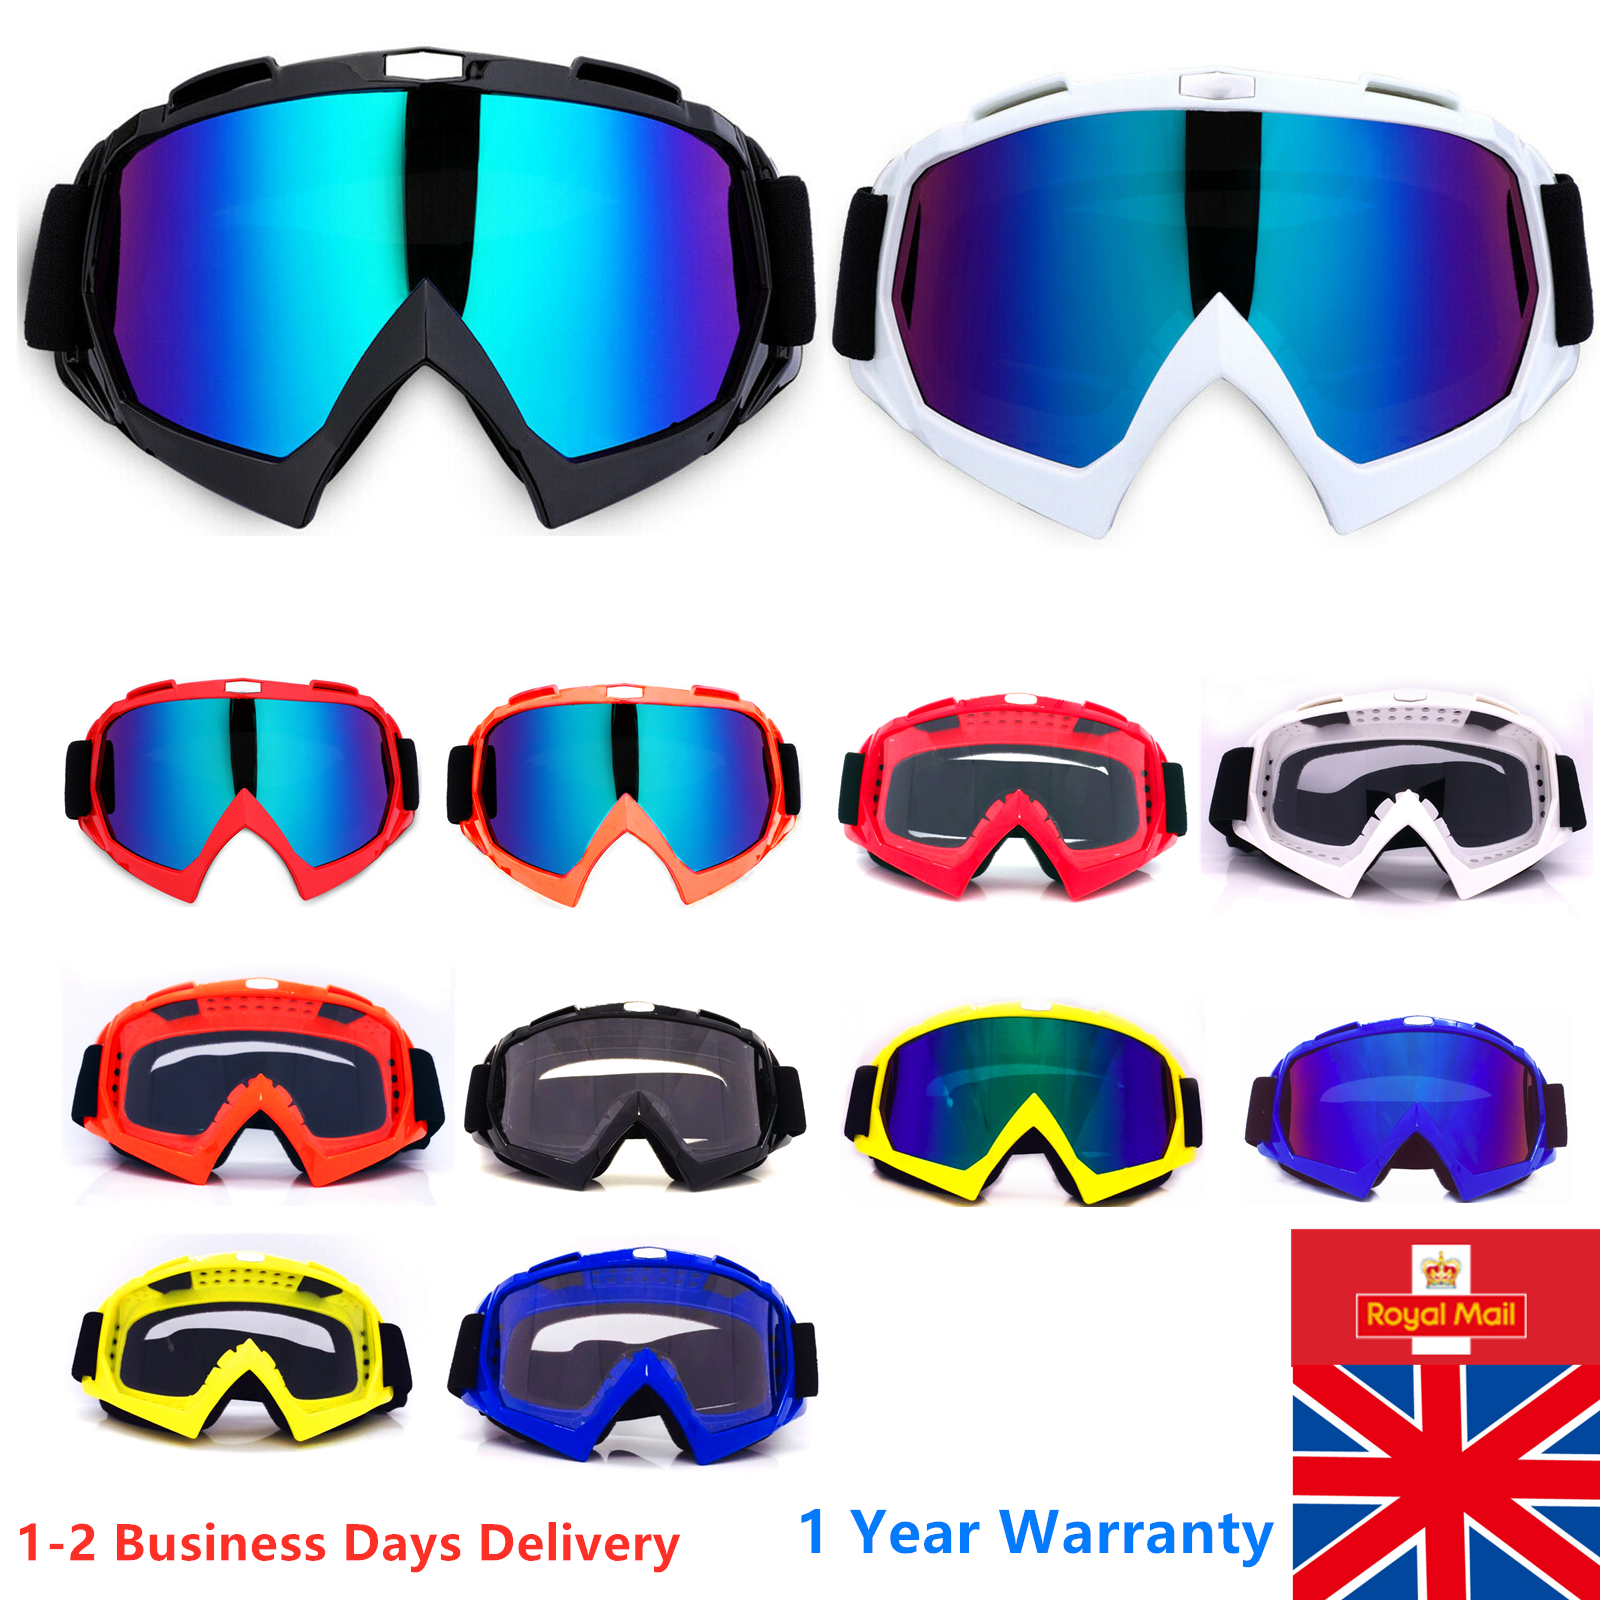 3A57 New Blue UV Protective Goggles Outdoors Motocycle Sports Cycling Sunglasses